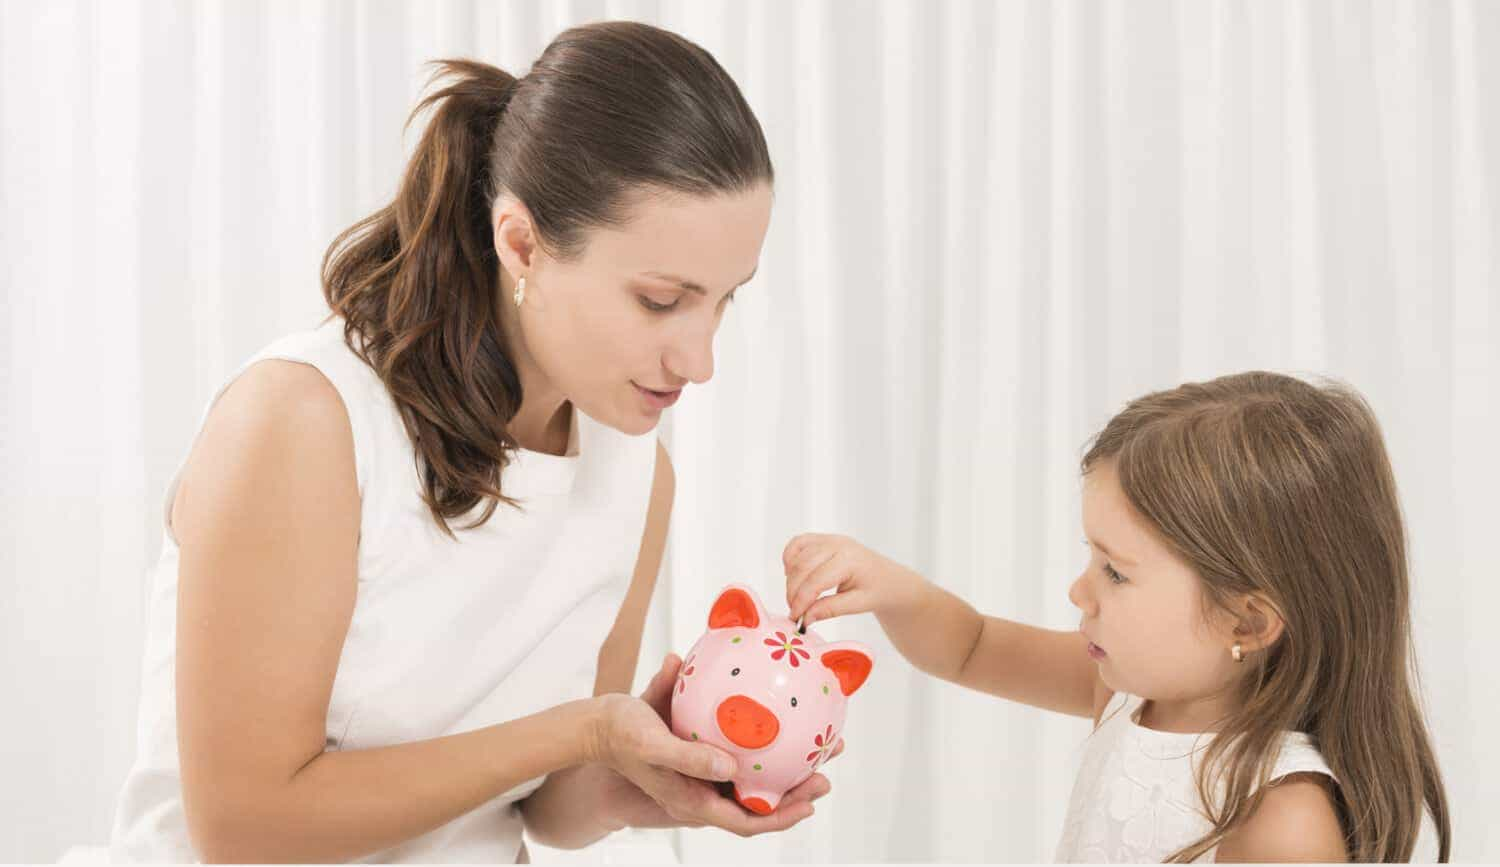 Mother helps daughter learn how to save by teaching her to put money away in a piggy bank, an crucial money lesson for kids